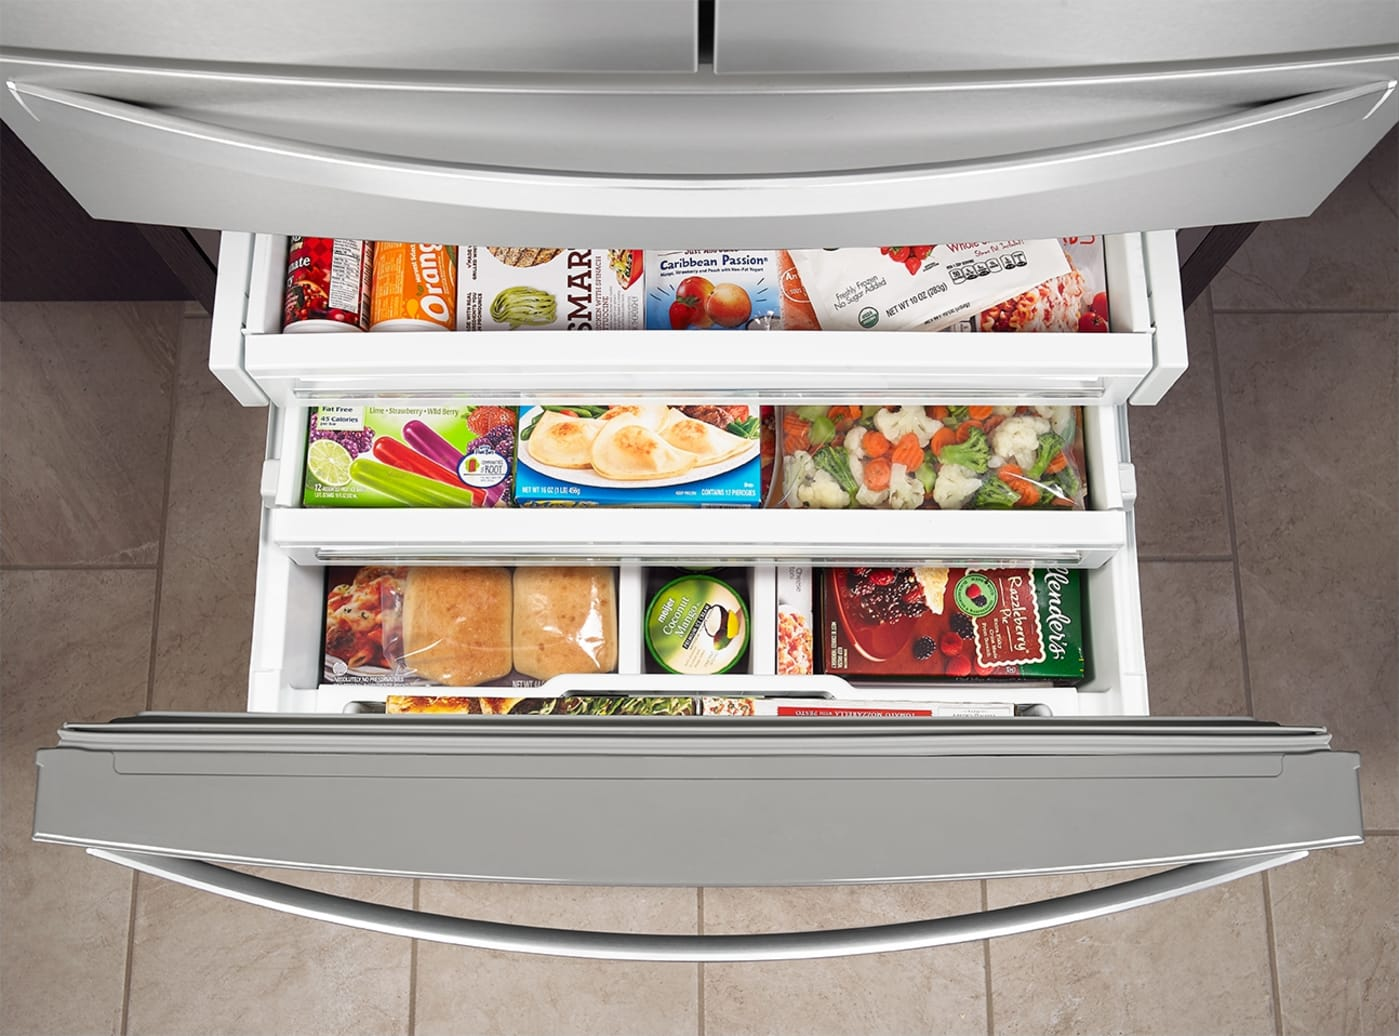 Wrx986sihz By Whirlpool French Door Refrigerators